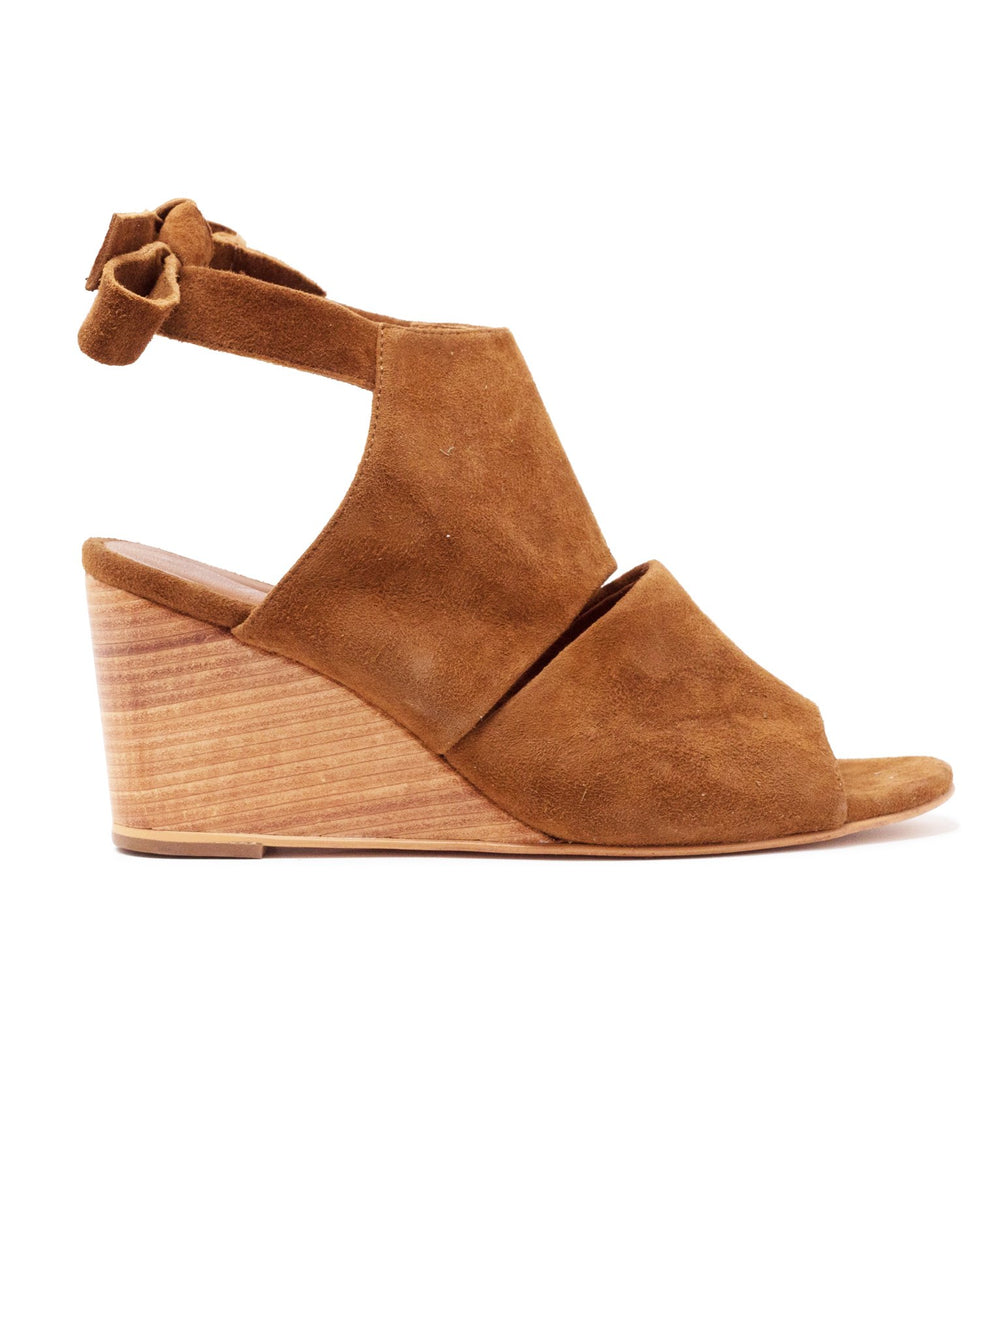 Estefani Wedge